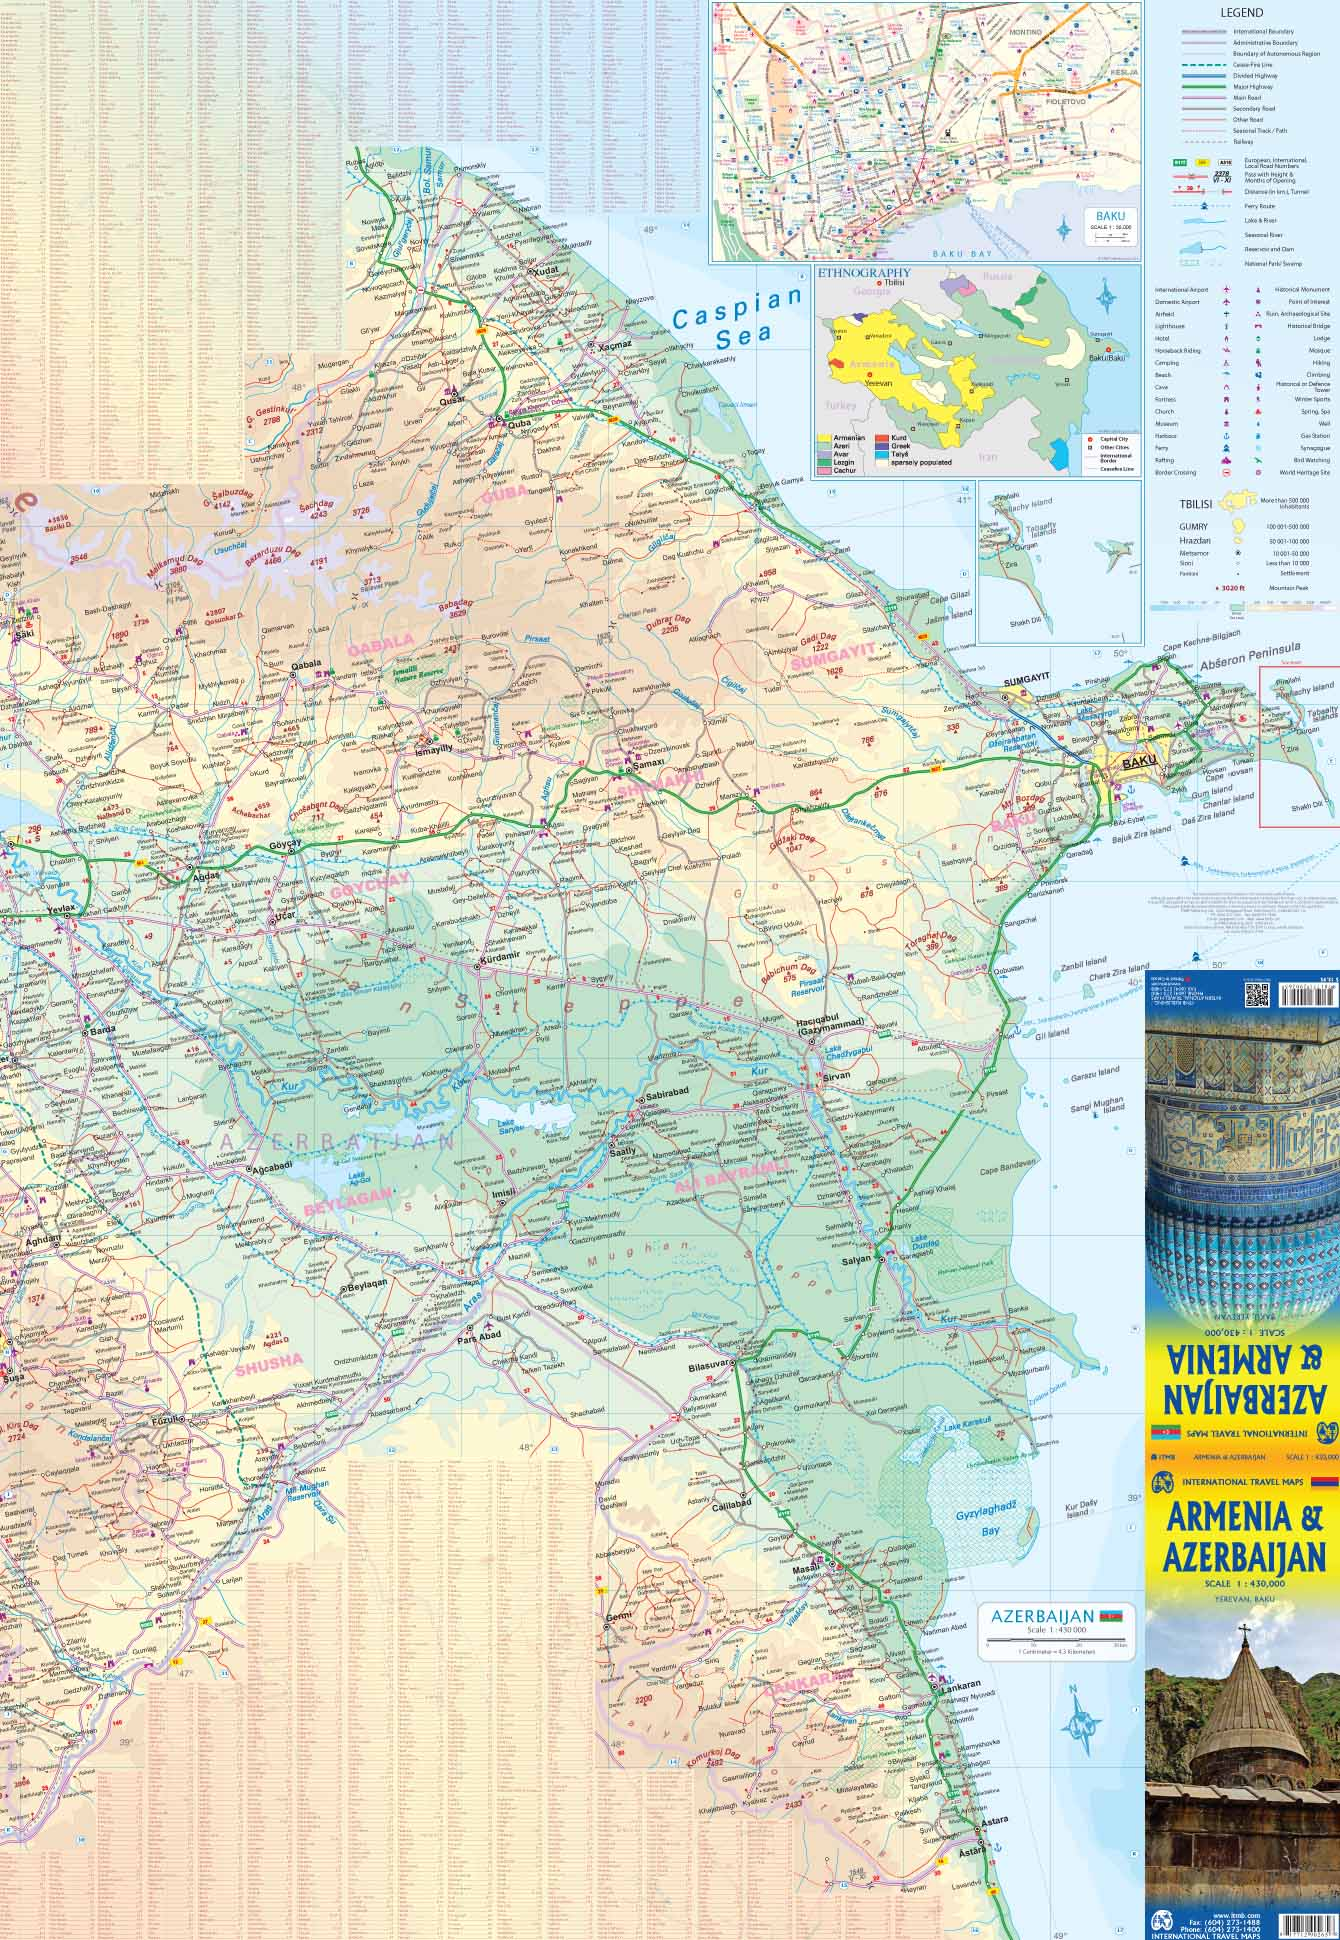 Armenia & Azerbaijan ITMB Map